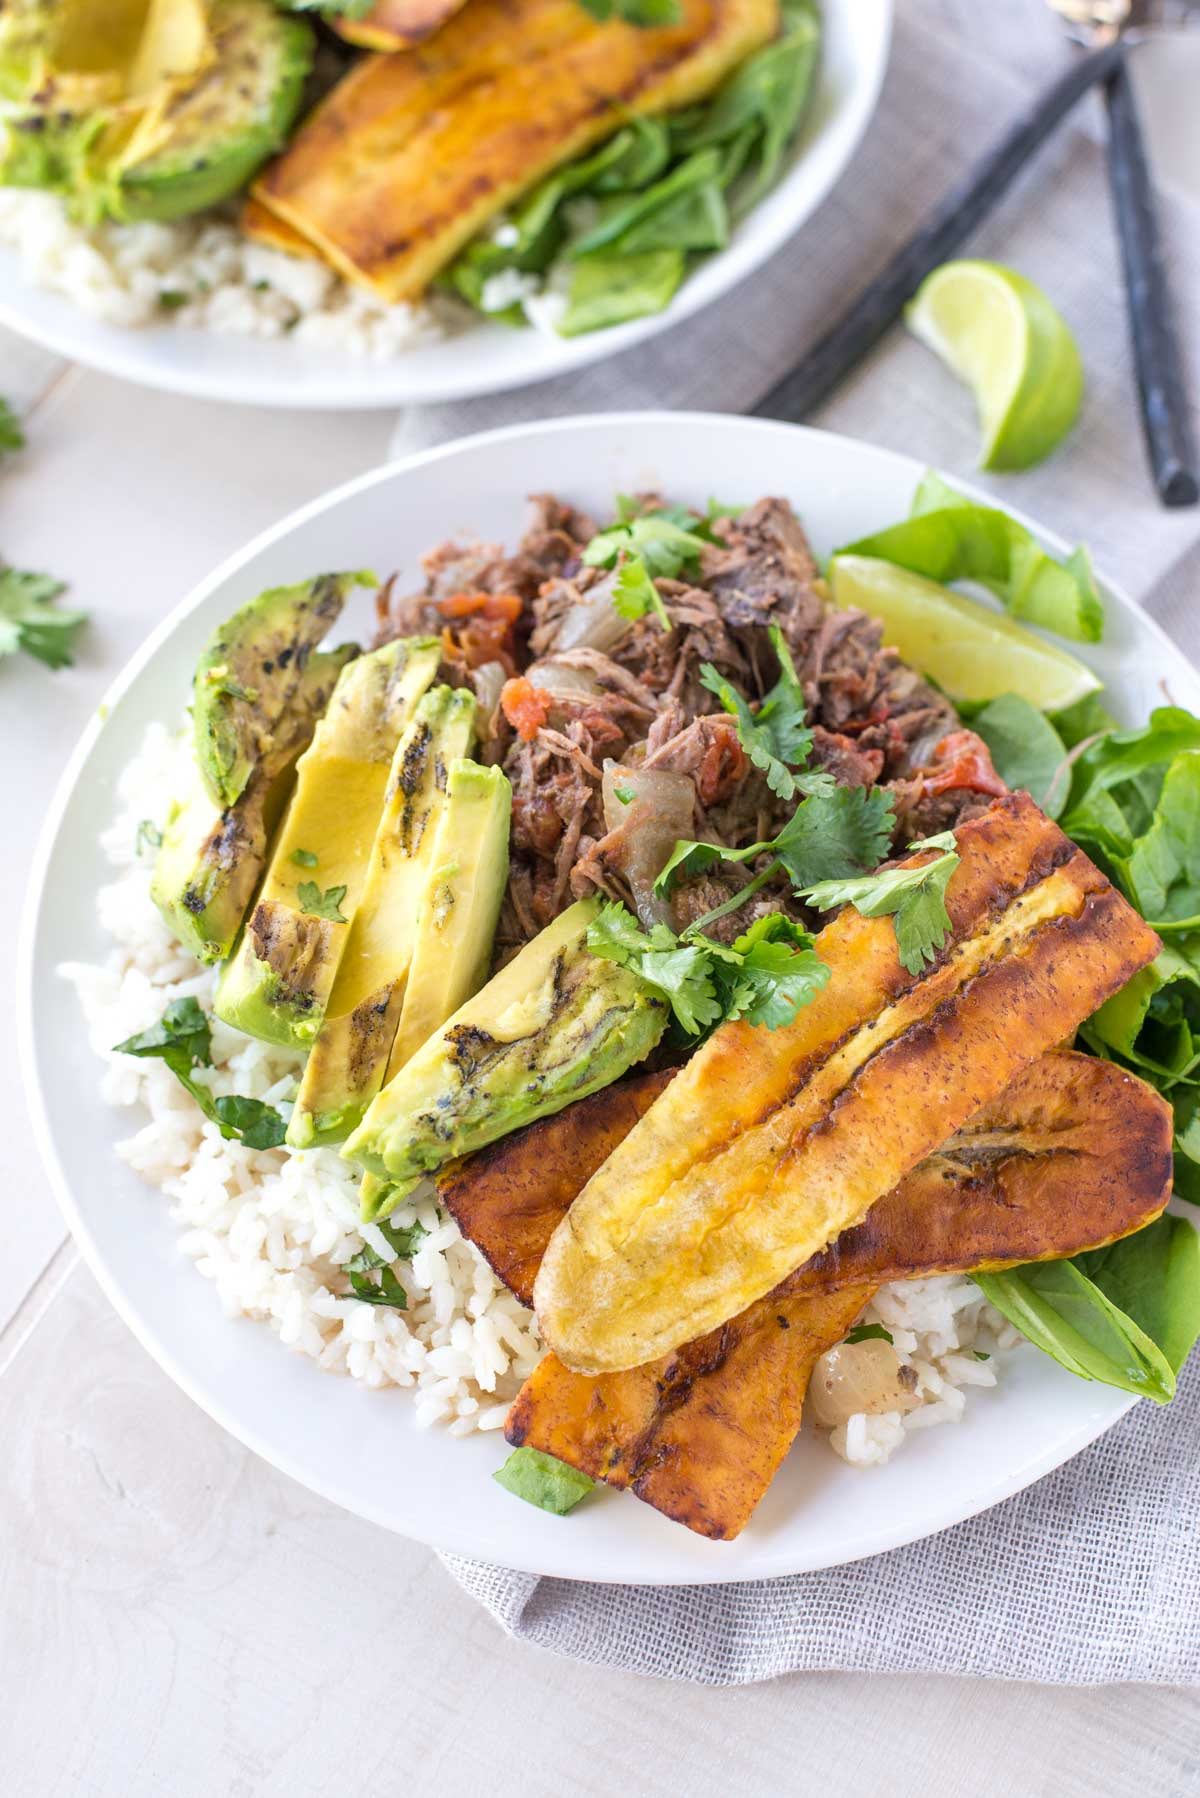 Looking for a quick and flavorful supper? This slow cooker barbacoa is just what you need.